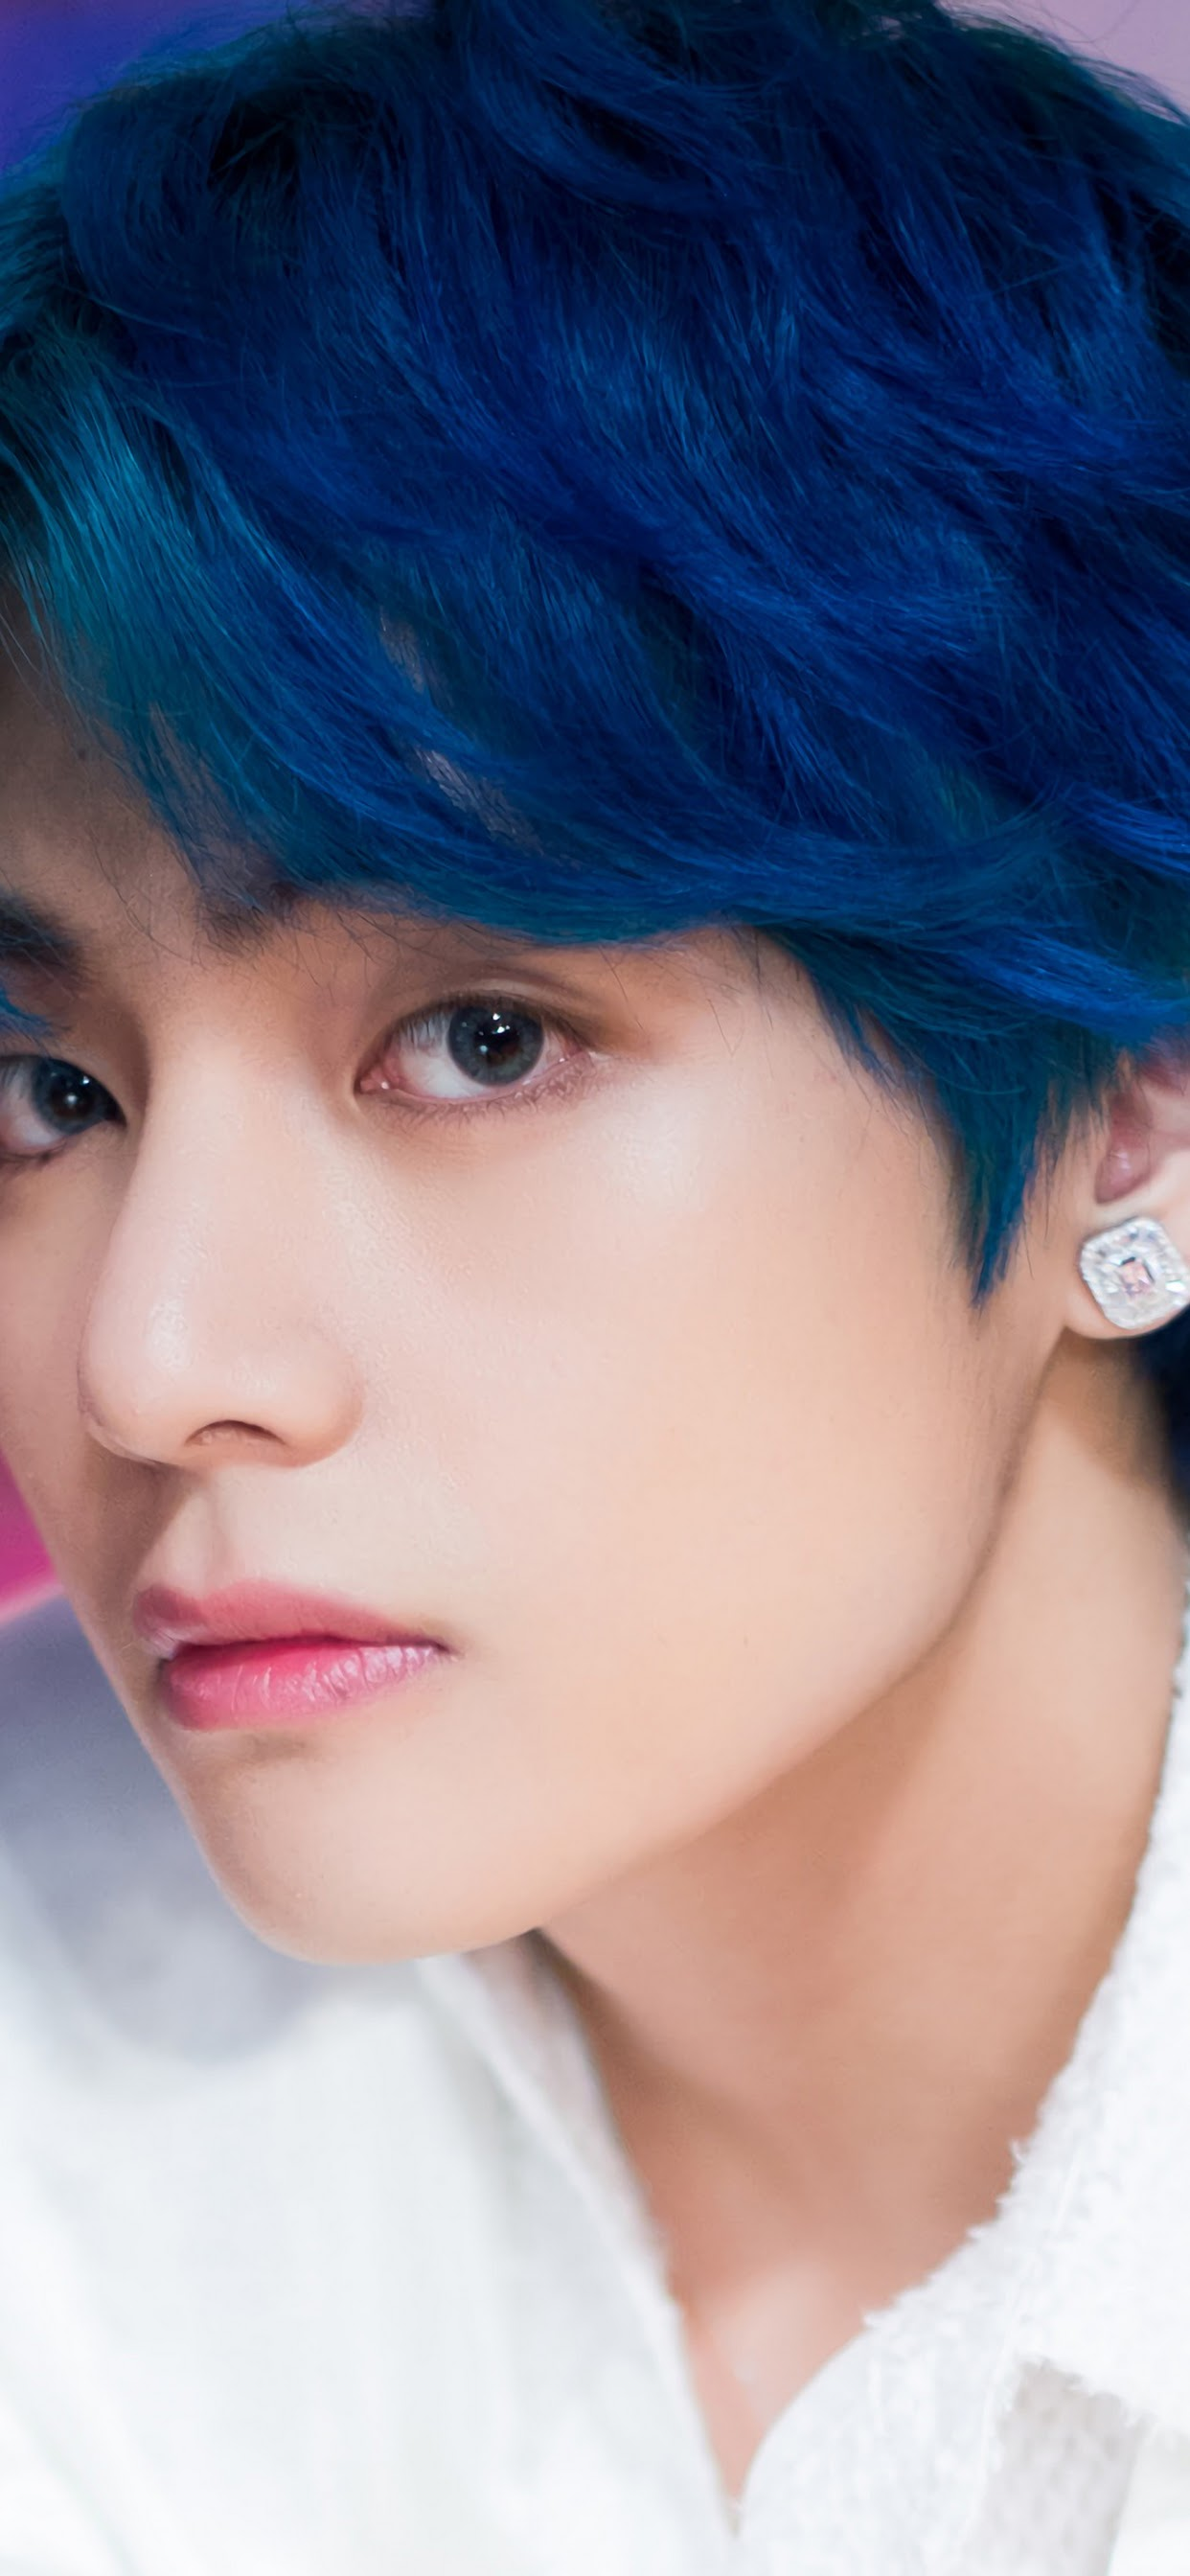 v bts boy with luv uhdpaper.com 4K 82